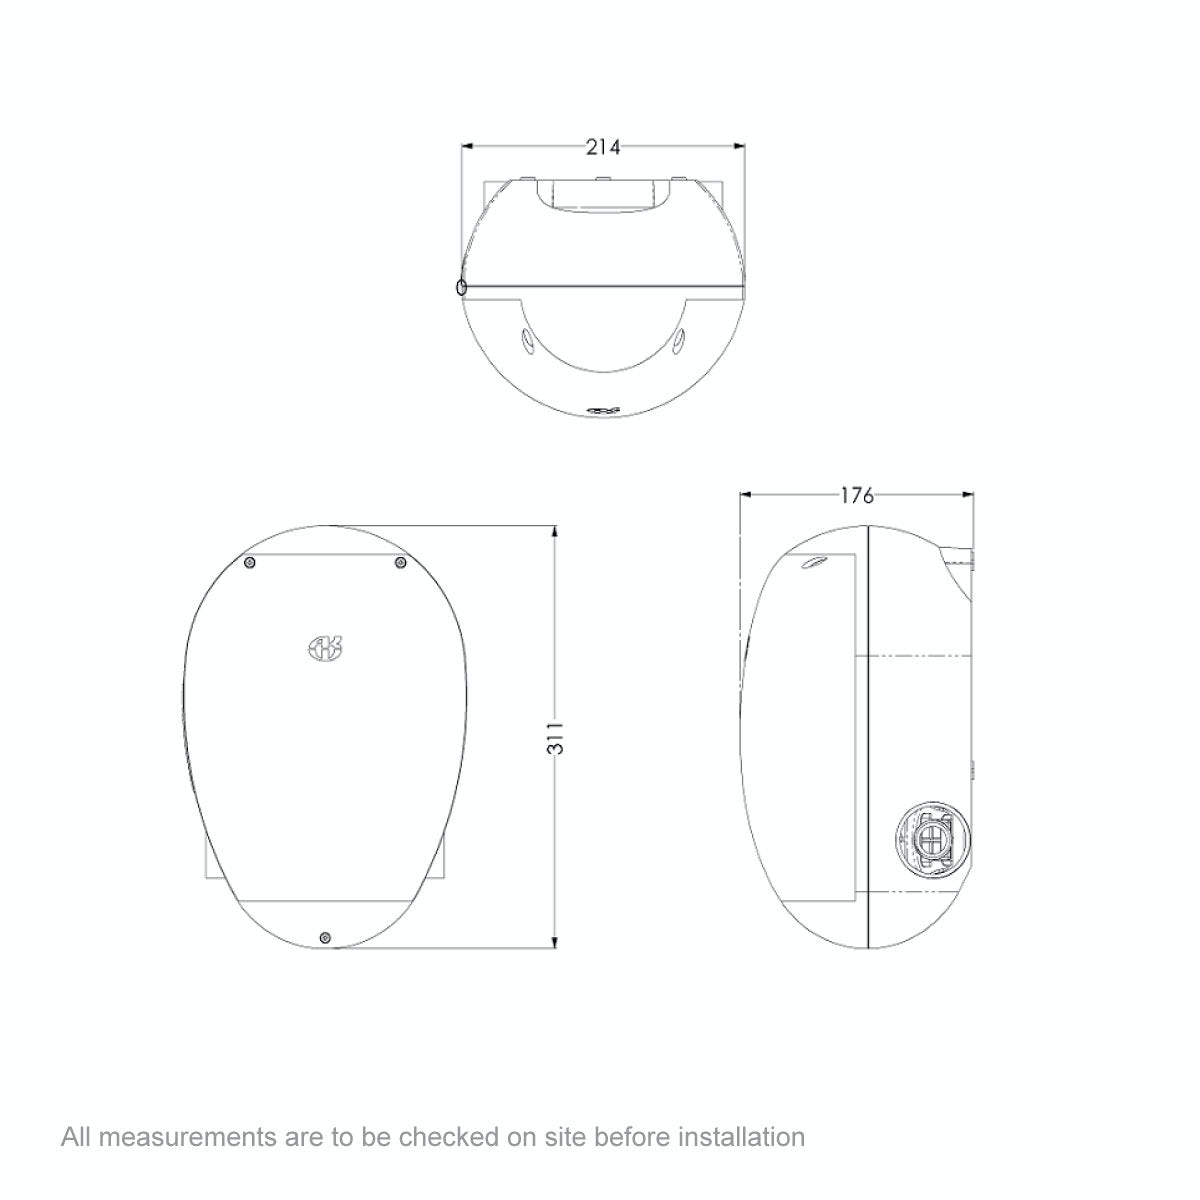 Dimensions for AKW M11 Digipump without waste